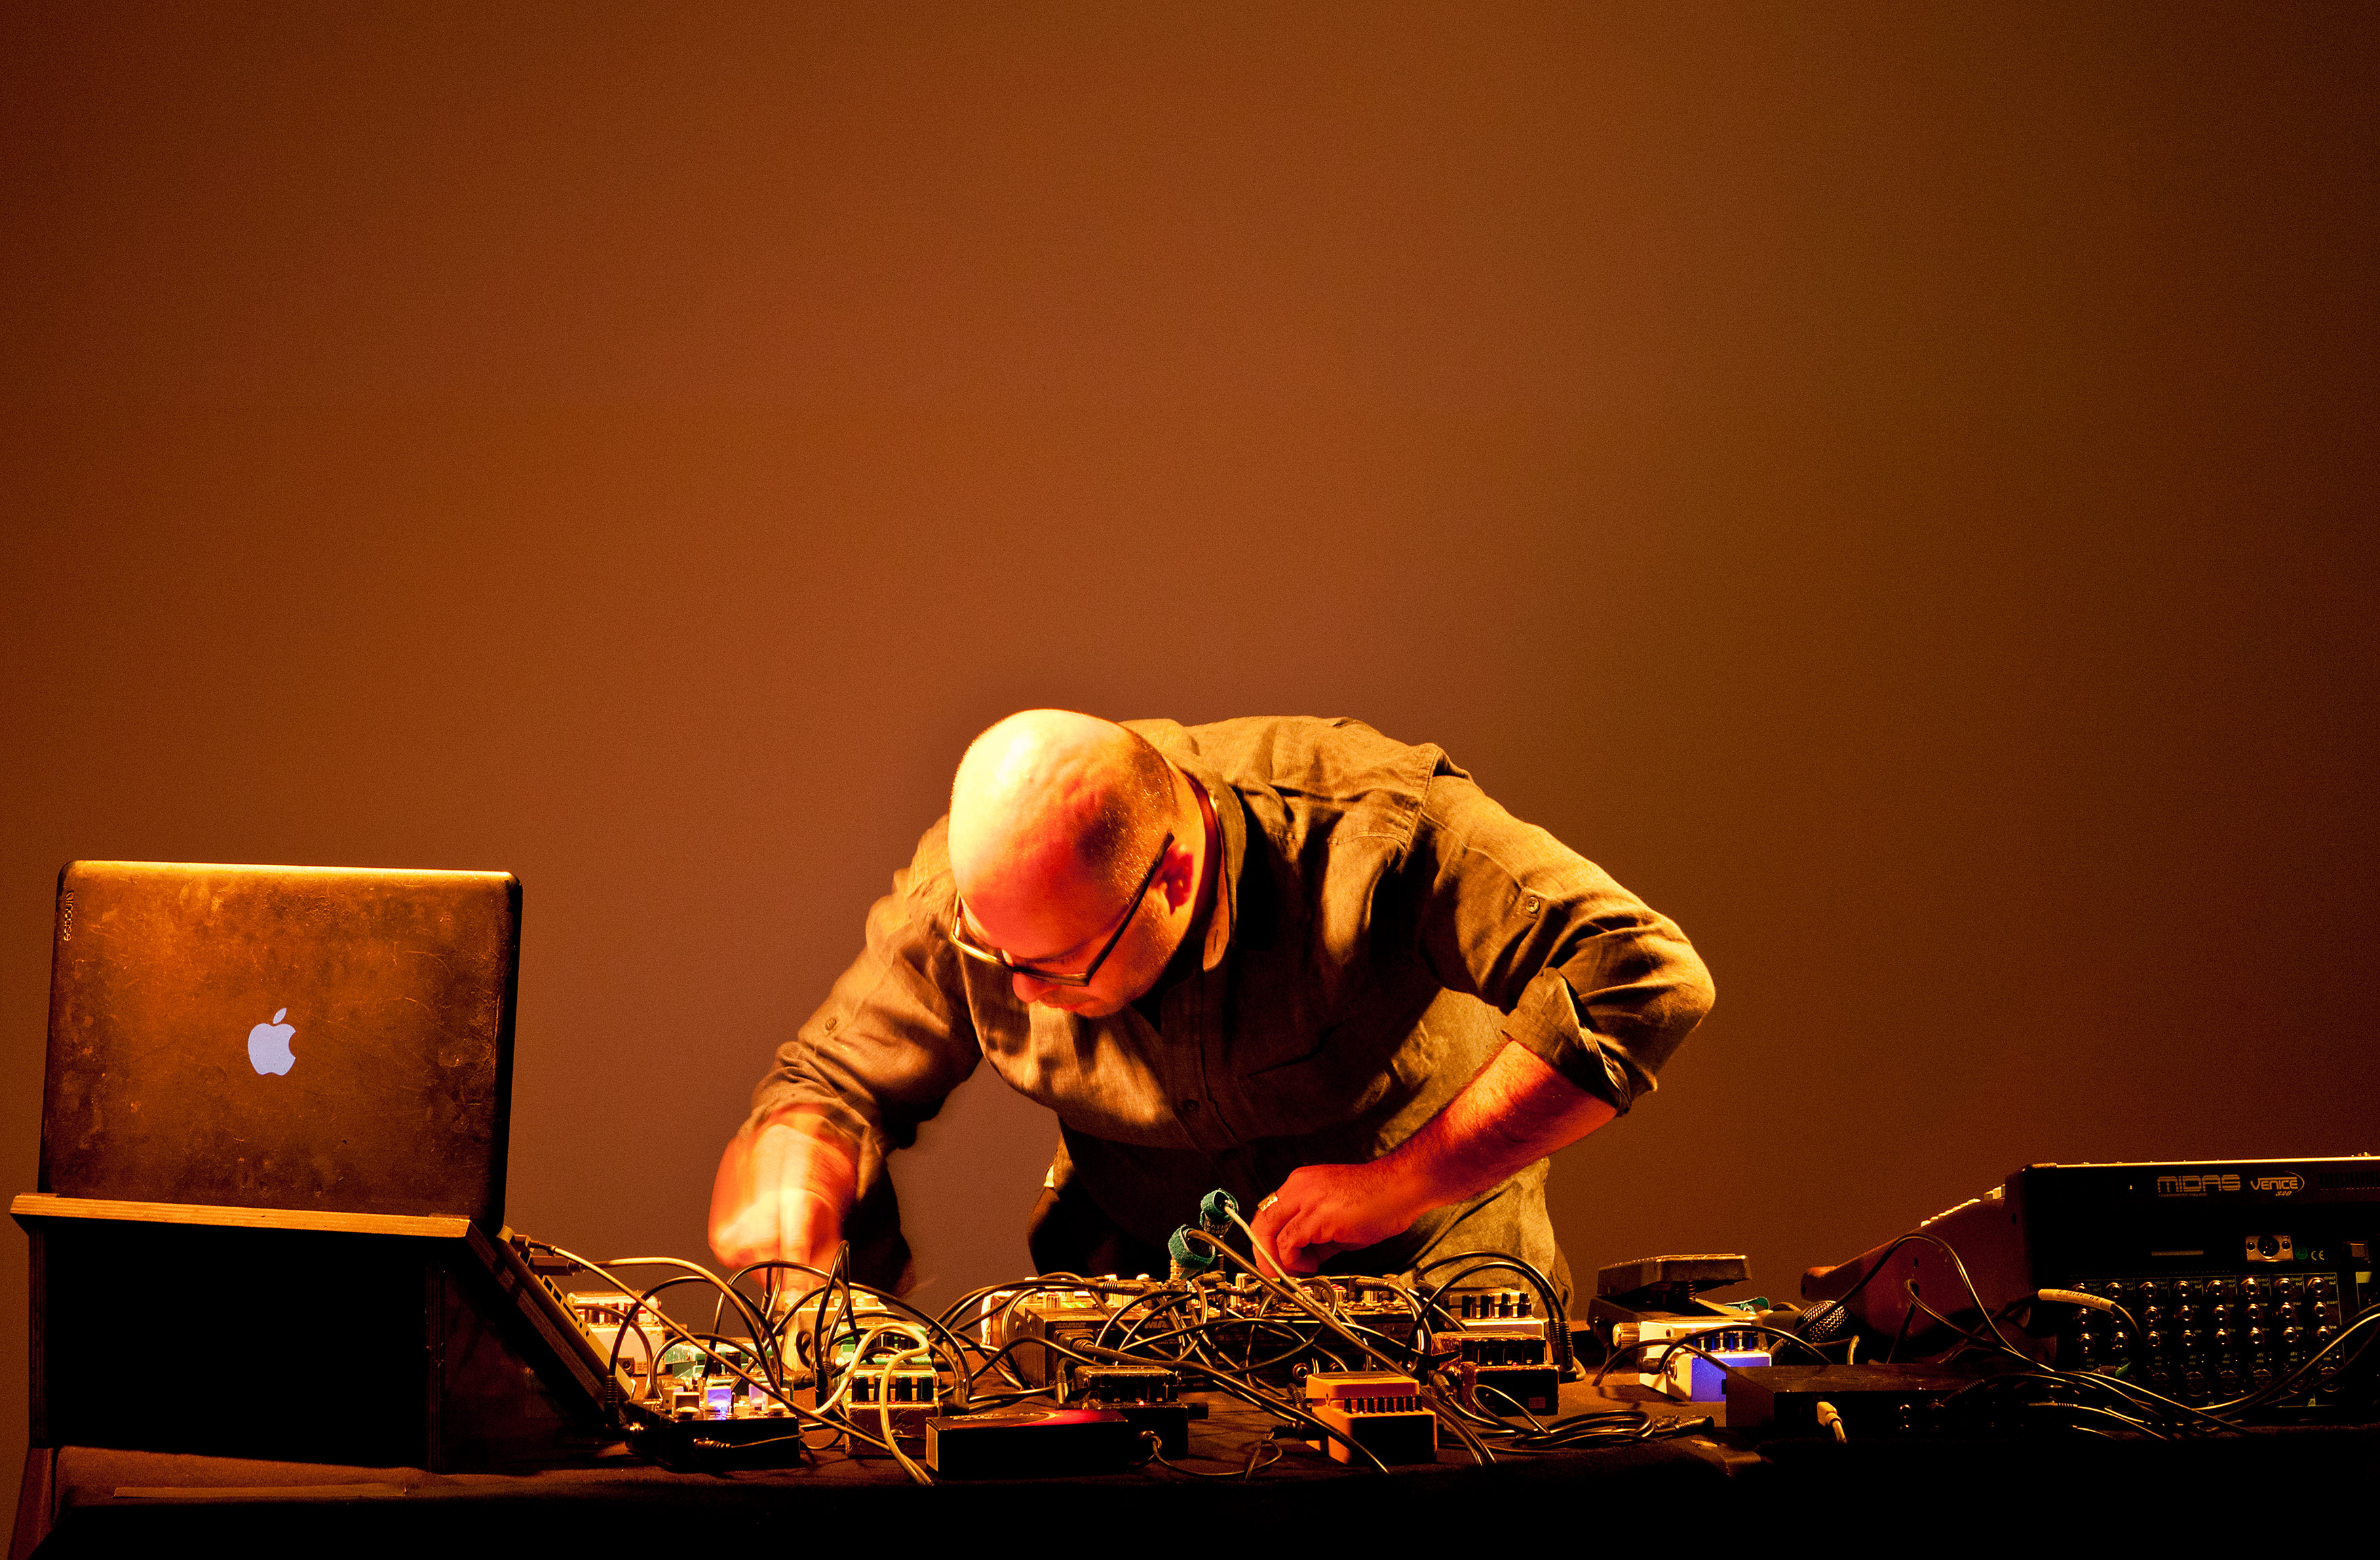 Hassan Khan Live at Portikus, Frankfurt, 2015, Photo by Helena Schlichting300dpi_1